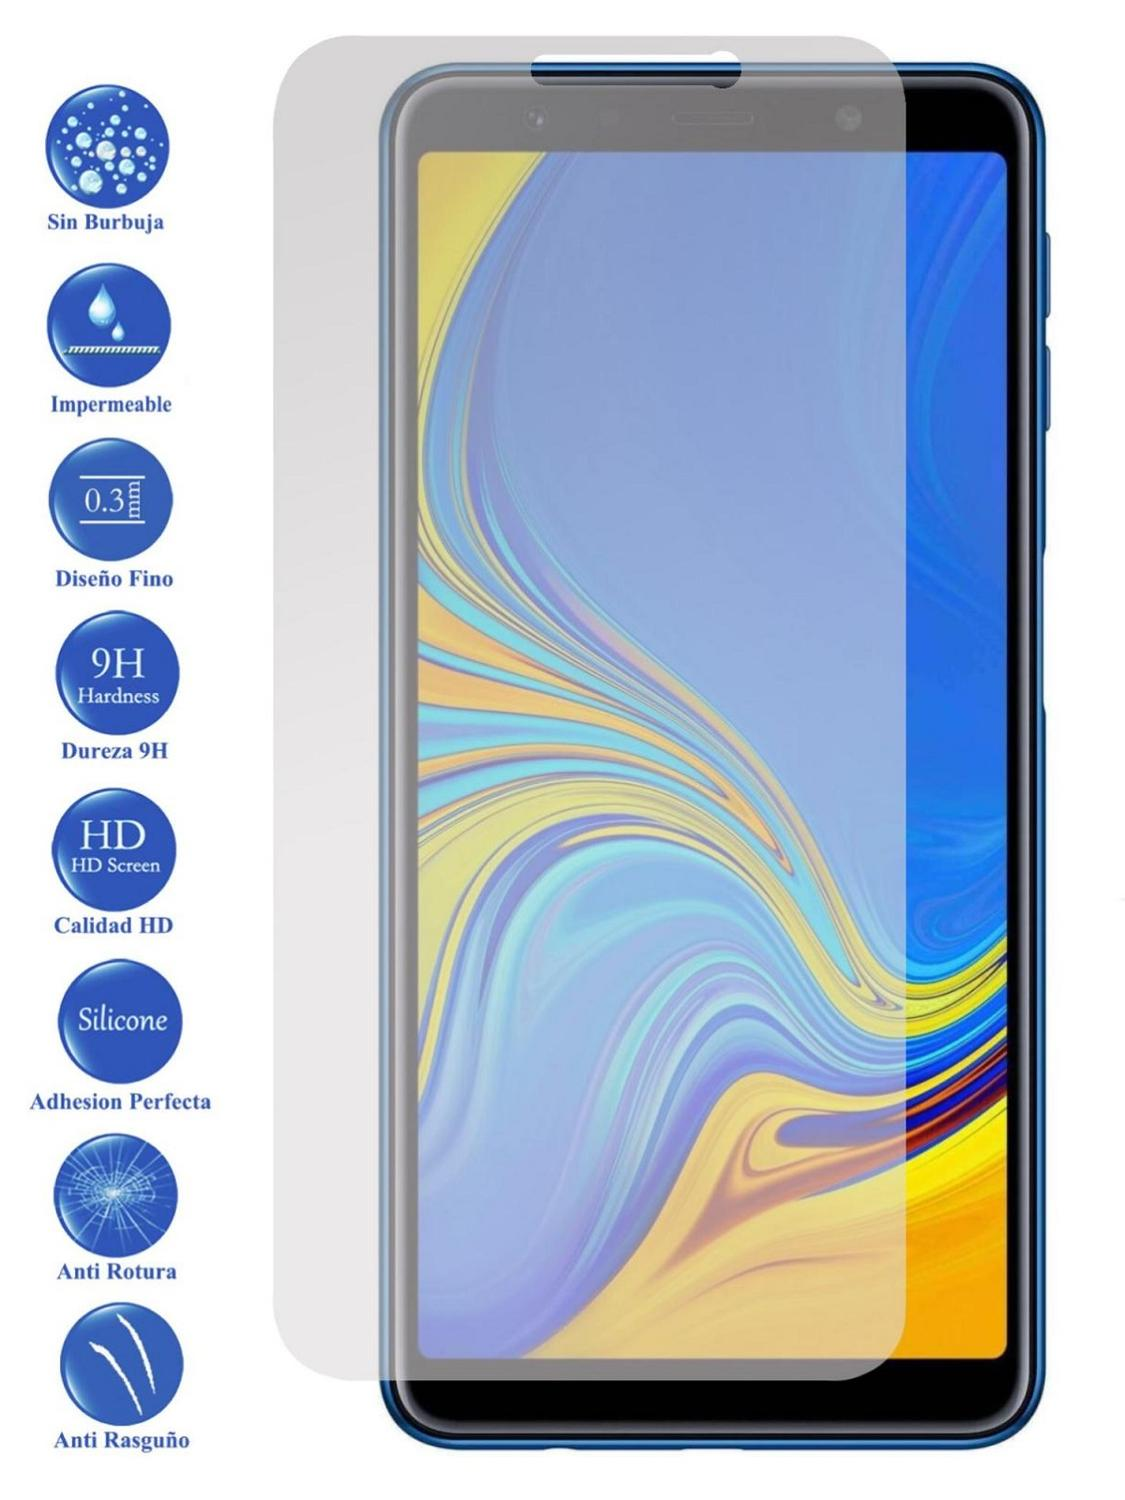 LCD cover <font><b>screen</b></font> <font><b>protector</b></font> Tempered Glass for <font><b>Samsung</b></font> Galaxy <font><b>A3</b></font> A6 A7 A8 A5 A7 A8 A9 Normal and Plus 2015 2016 <font><b>2017</b></font> 2018 image